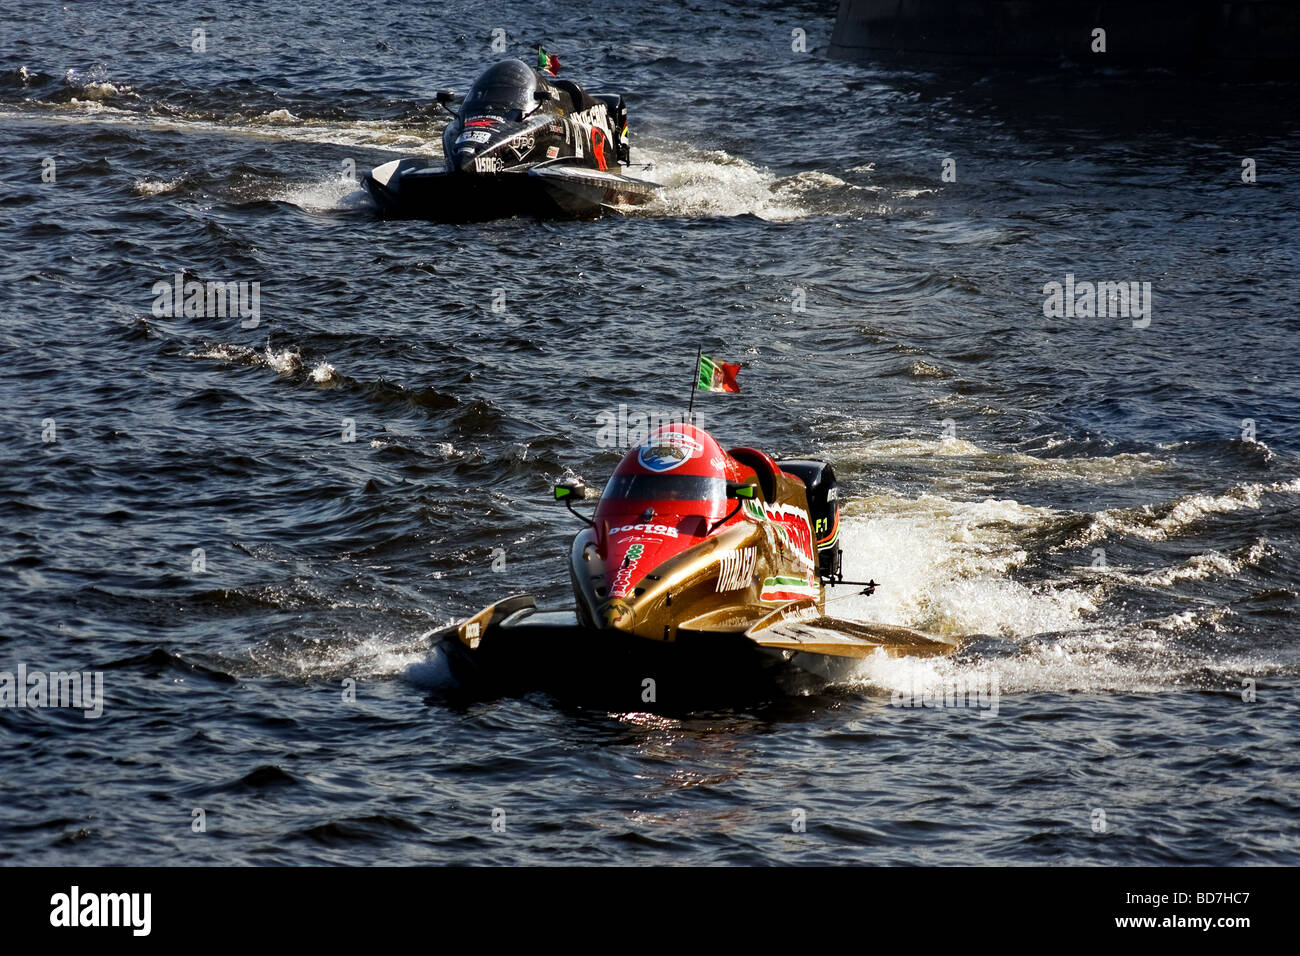 Formula 1 Powerboat World Championship 2009 St.Petersburg Russia - Stock Image